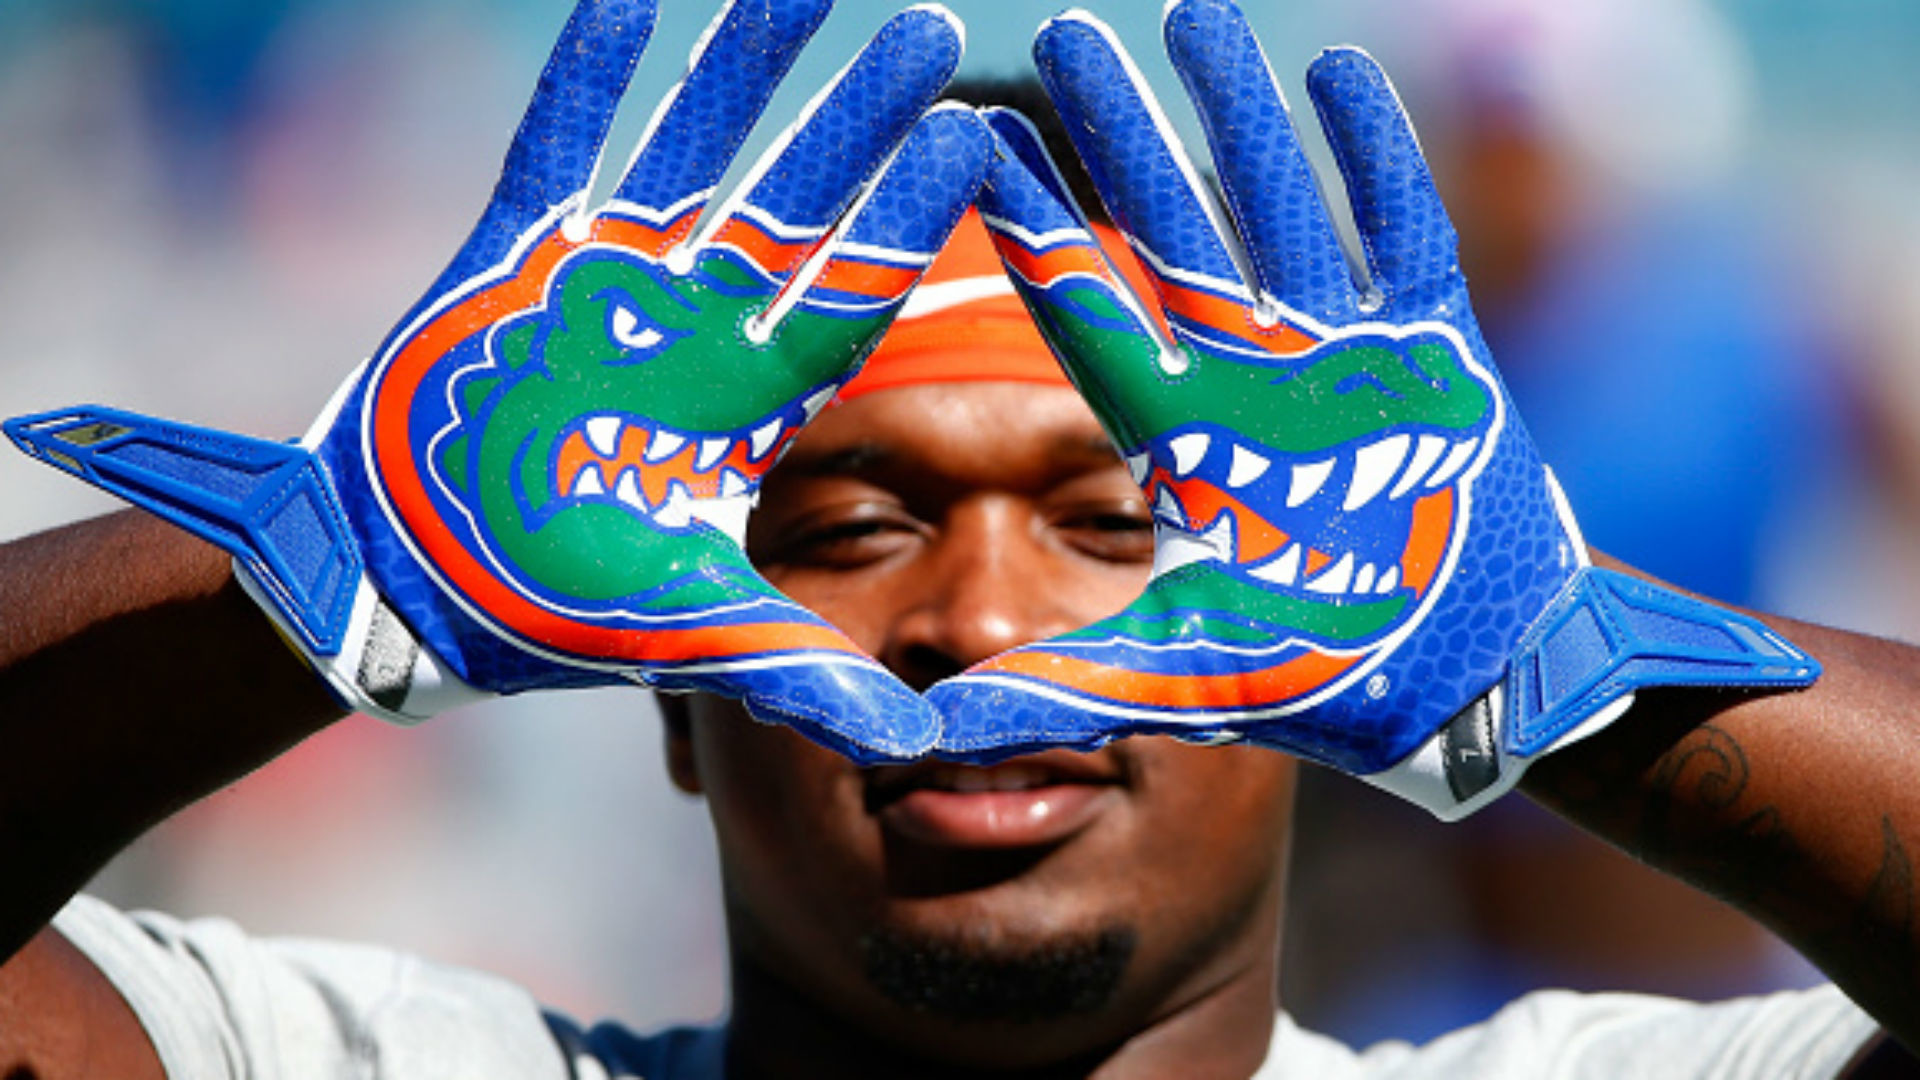 1920x1080 Free Backgrounds Florida Gators Download.